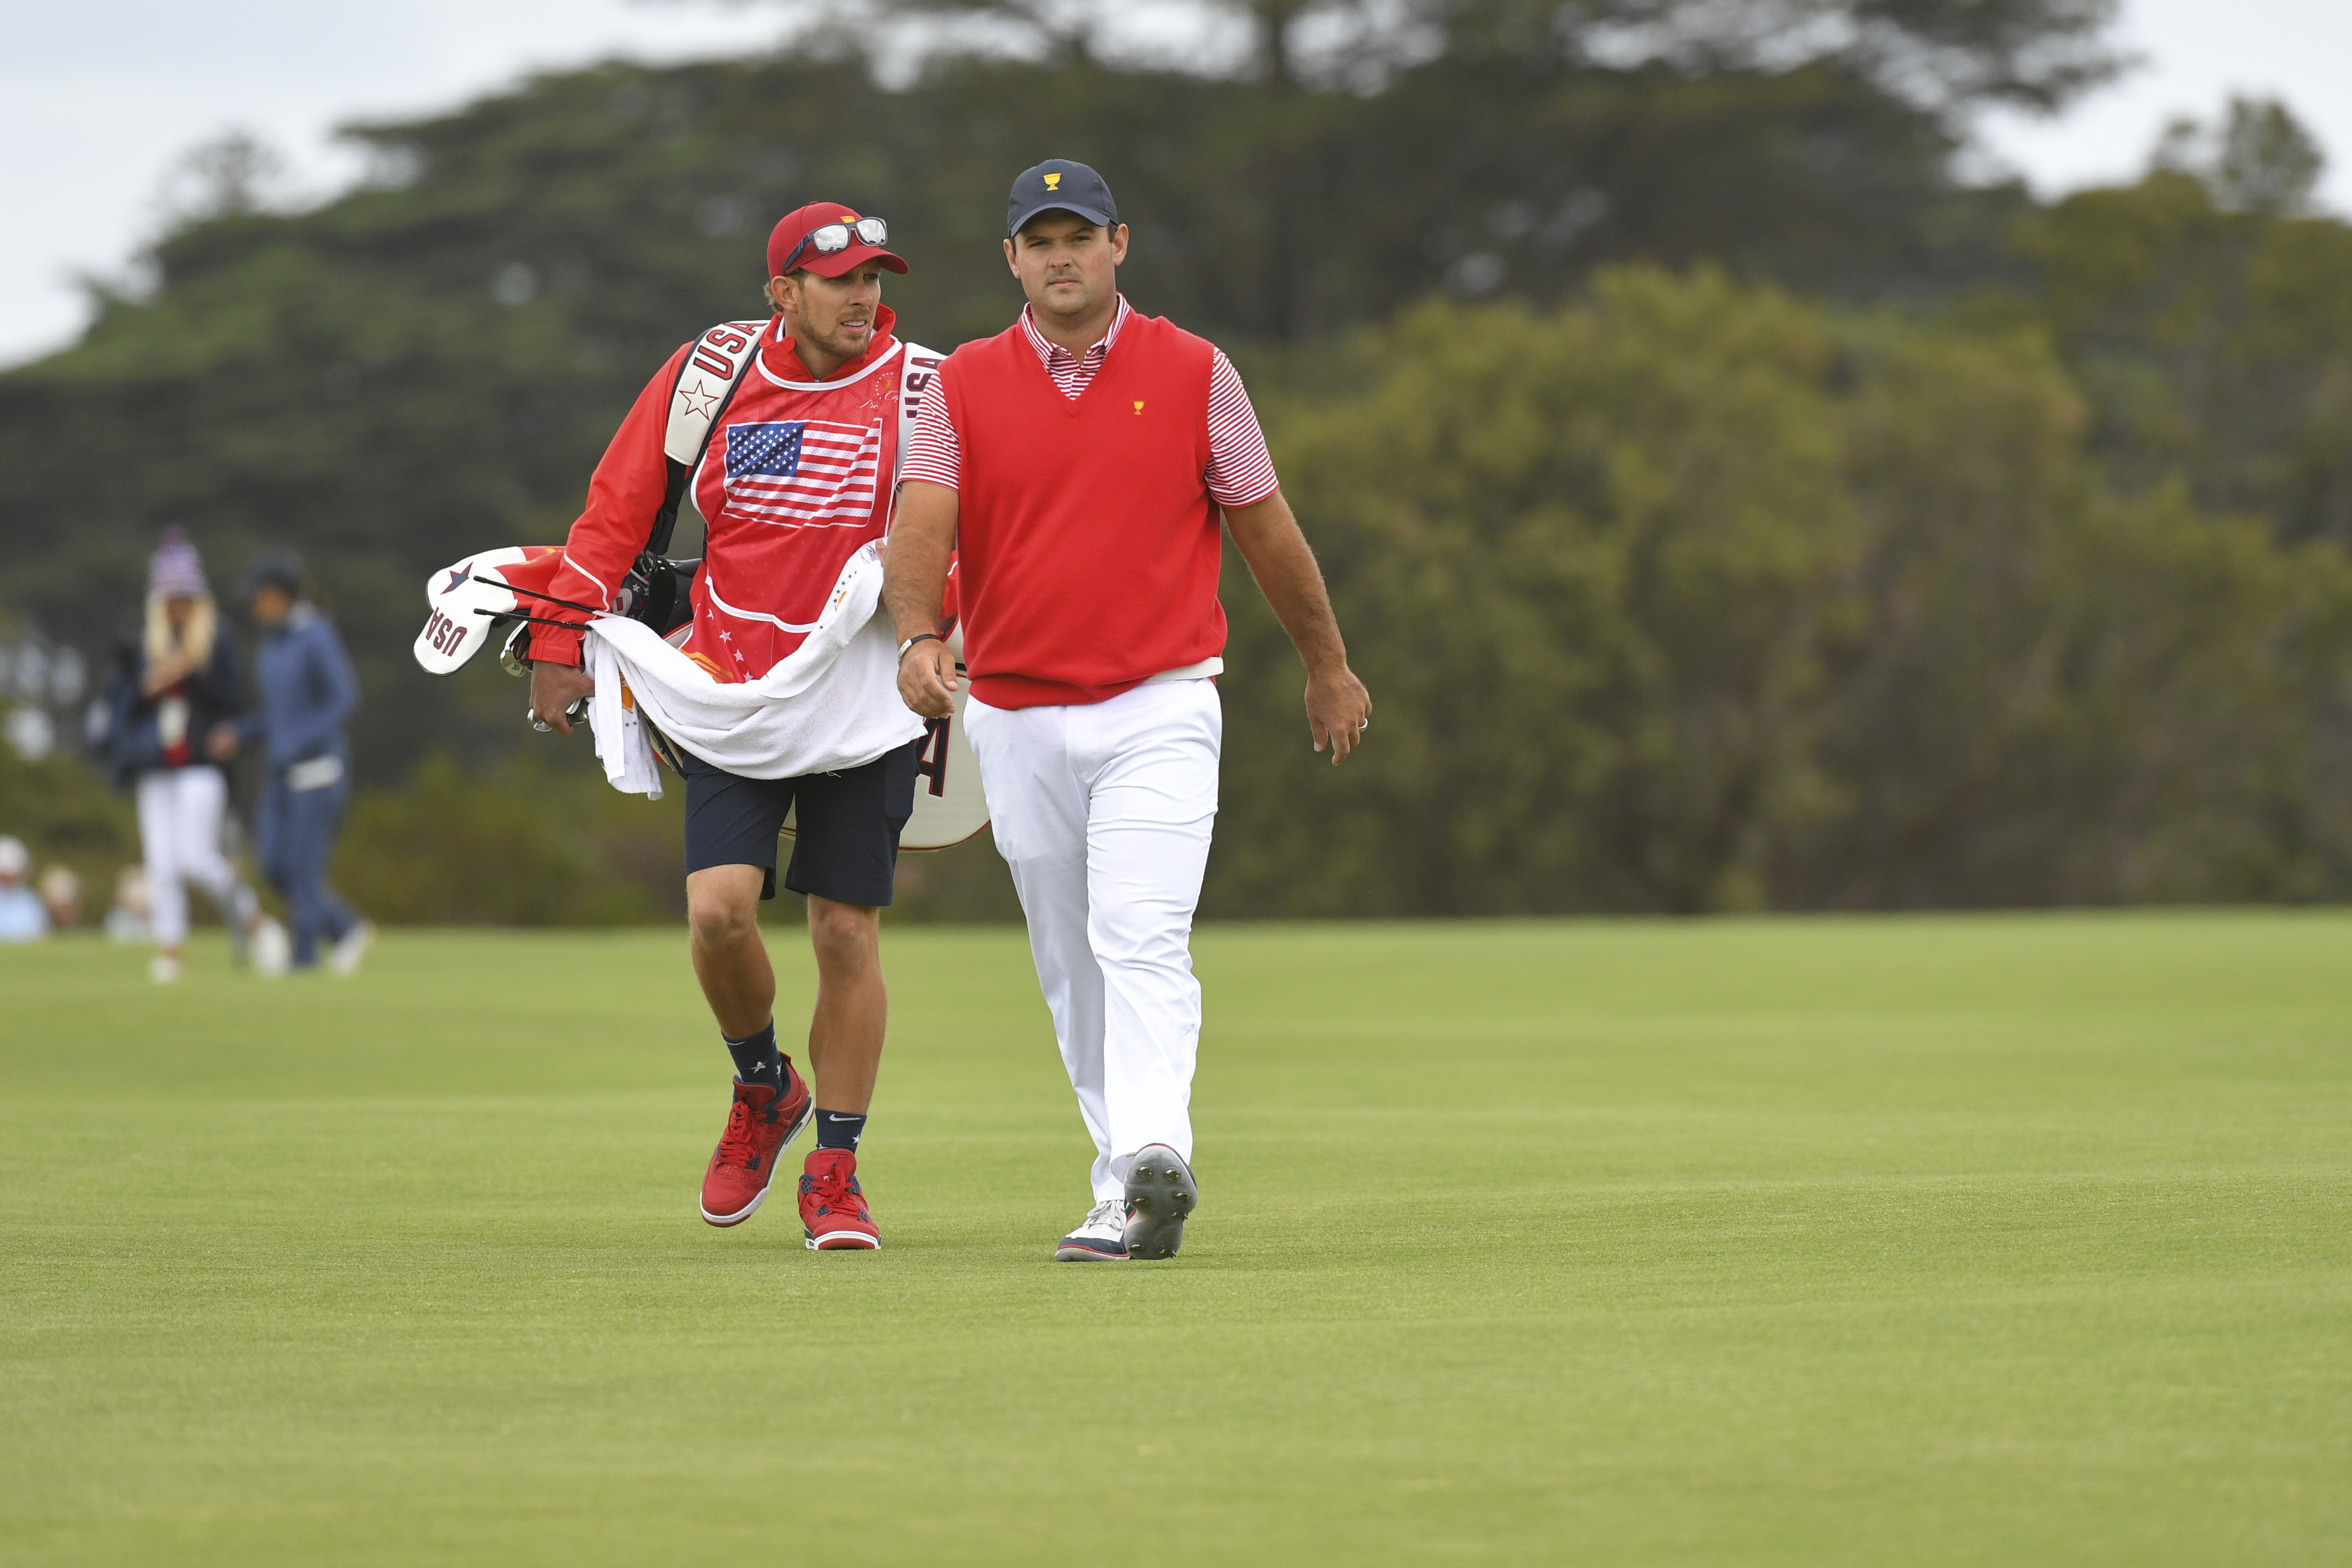 Patrick Reed and his caddie could be facing some serious consequences at the Presidents Cup.